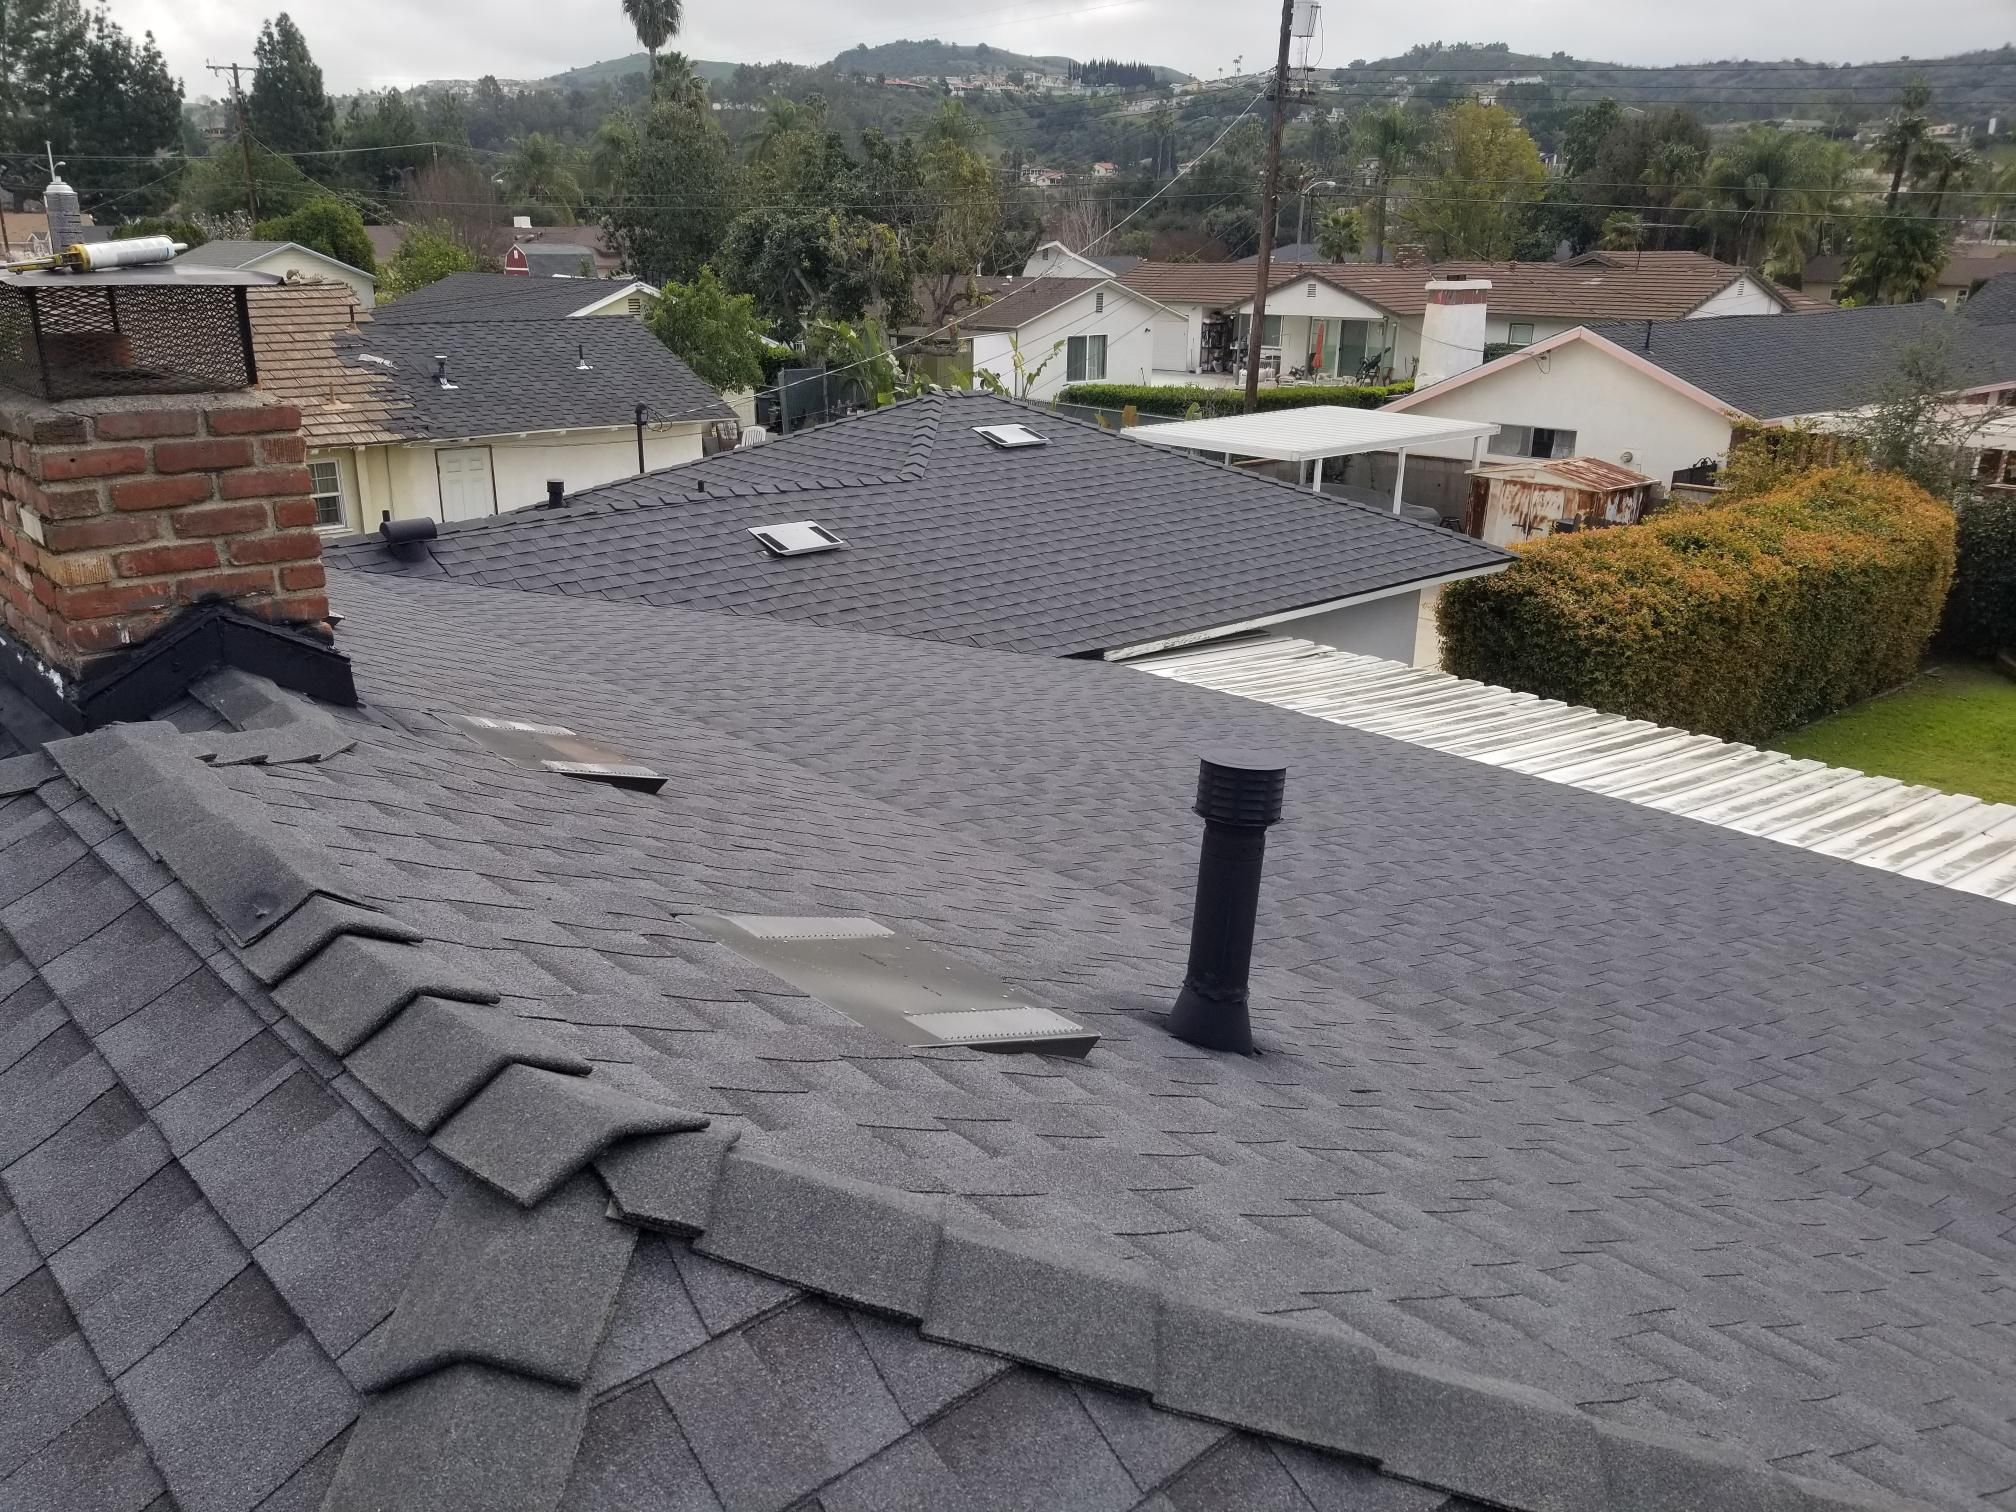 Best Way Roofing Los Angeles Ca Roofing Services Cool Roof Leaky Roof Repair